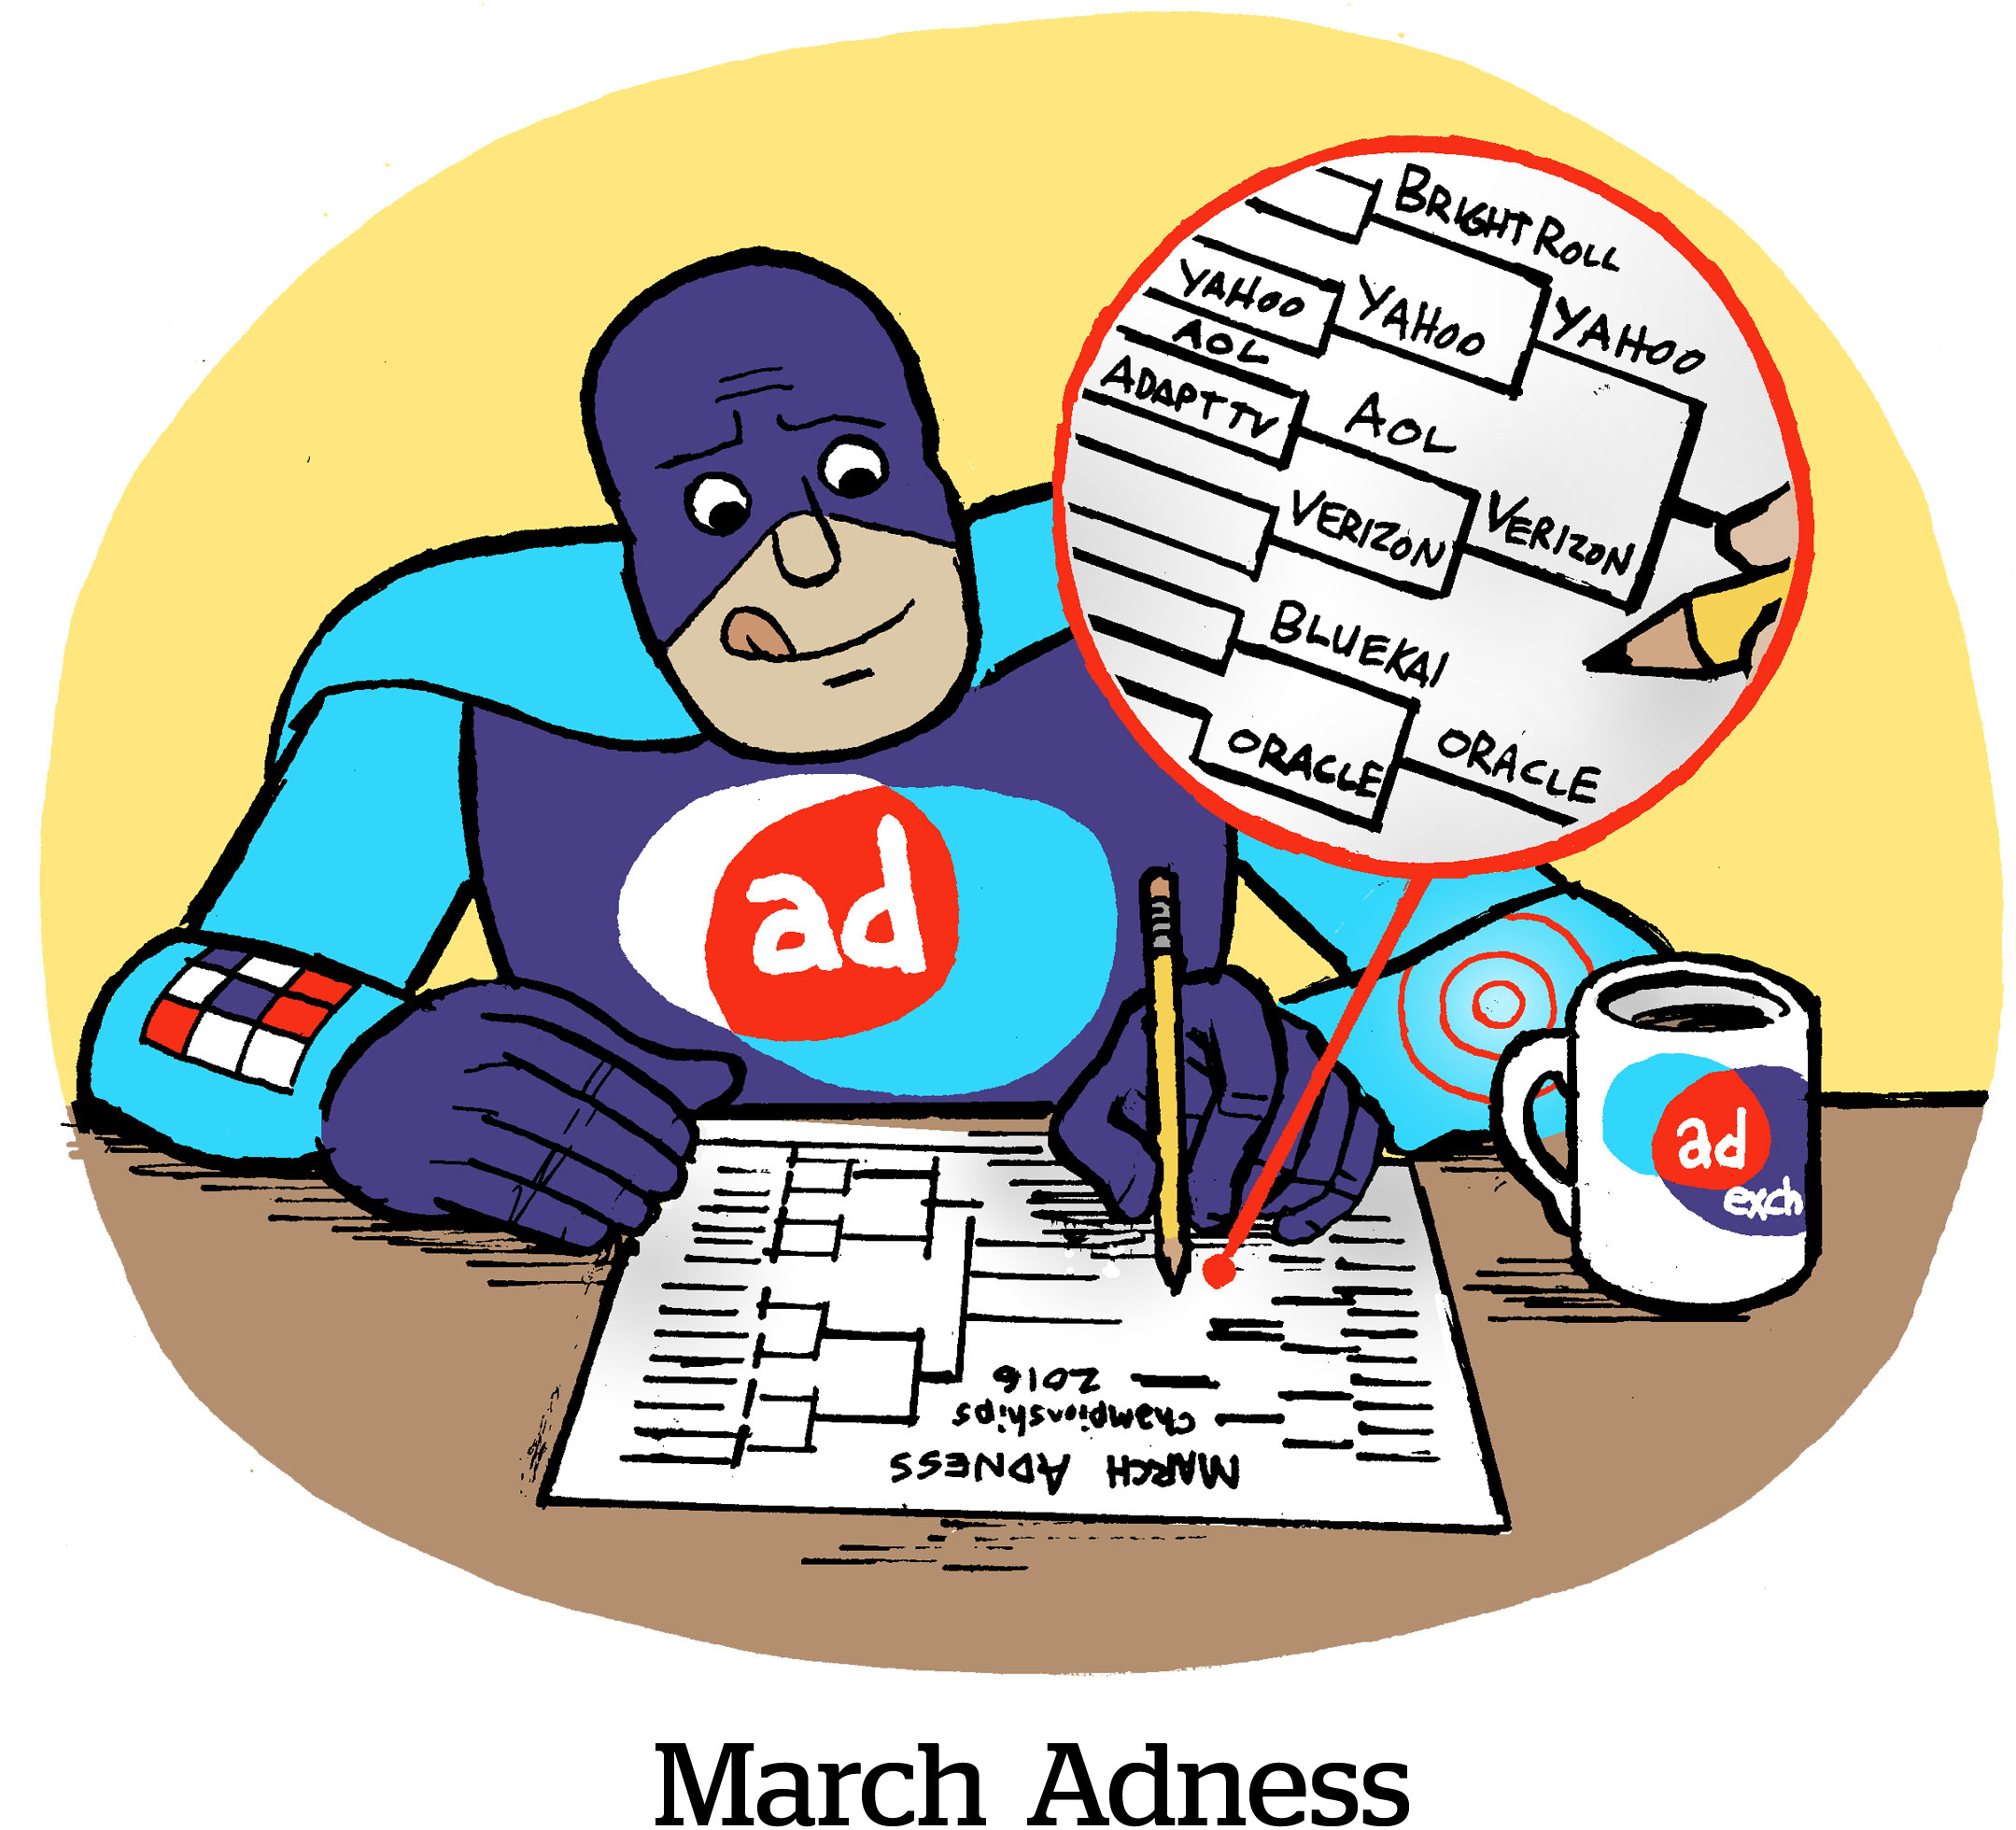 March Adness